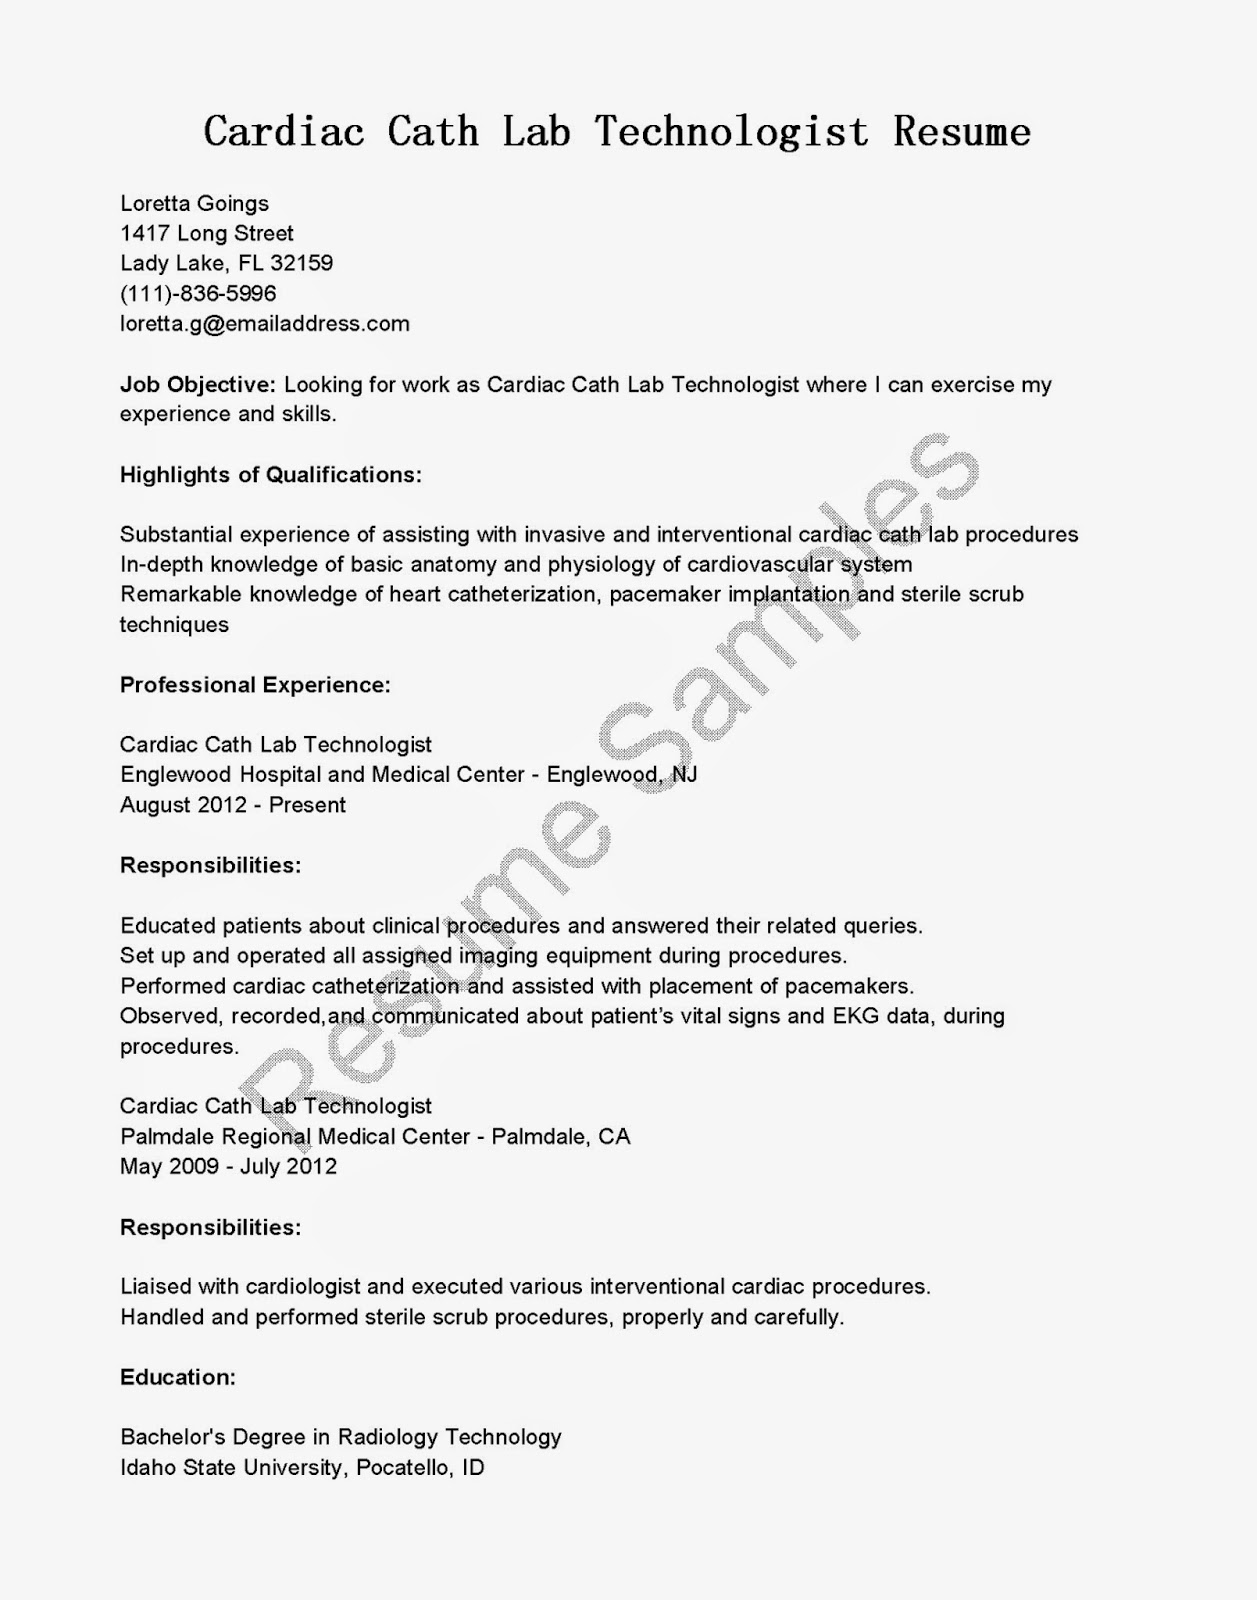 sample resume for blood bank technologist resume maker create sample resume for blood bank technologist medical technologist job description monster and learning sample resume format